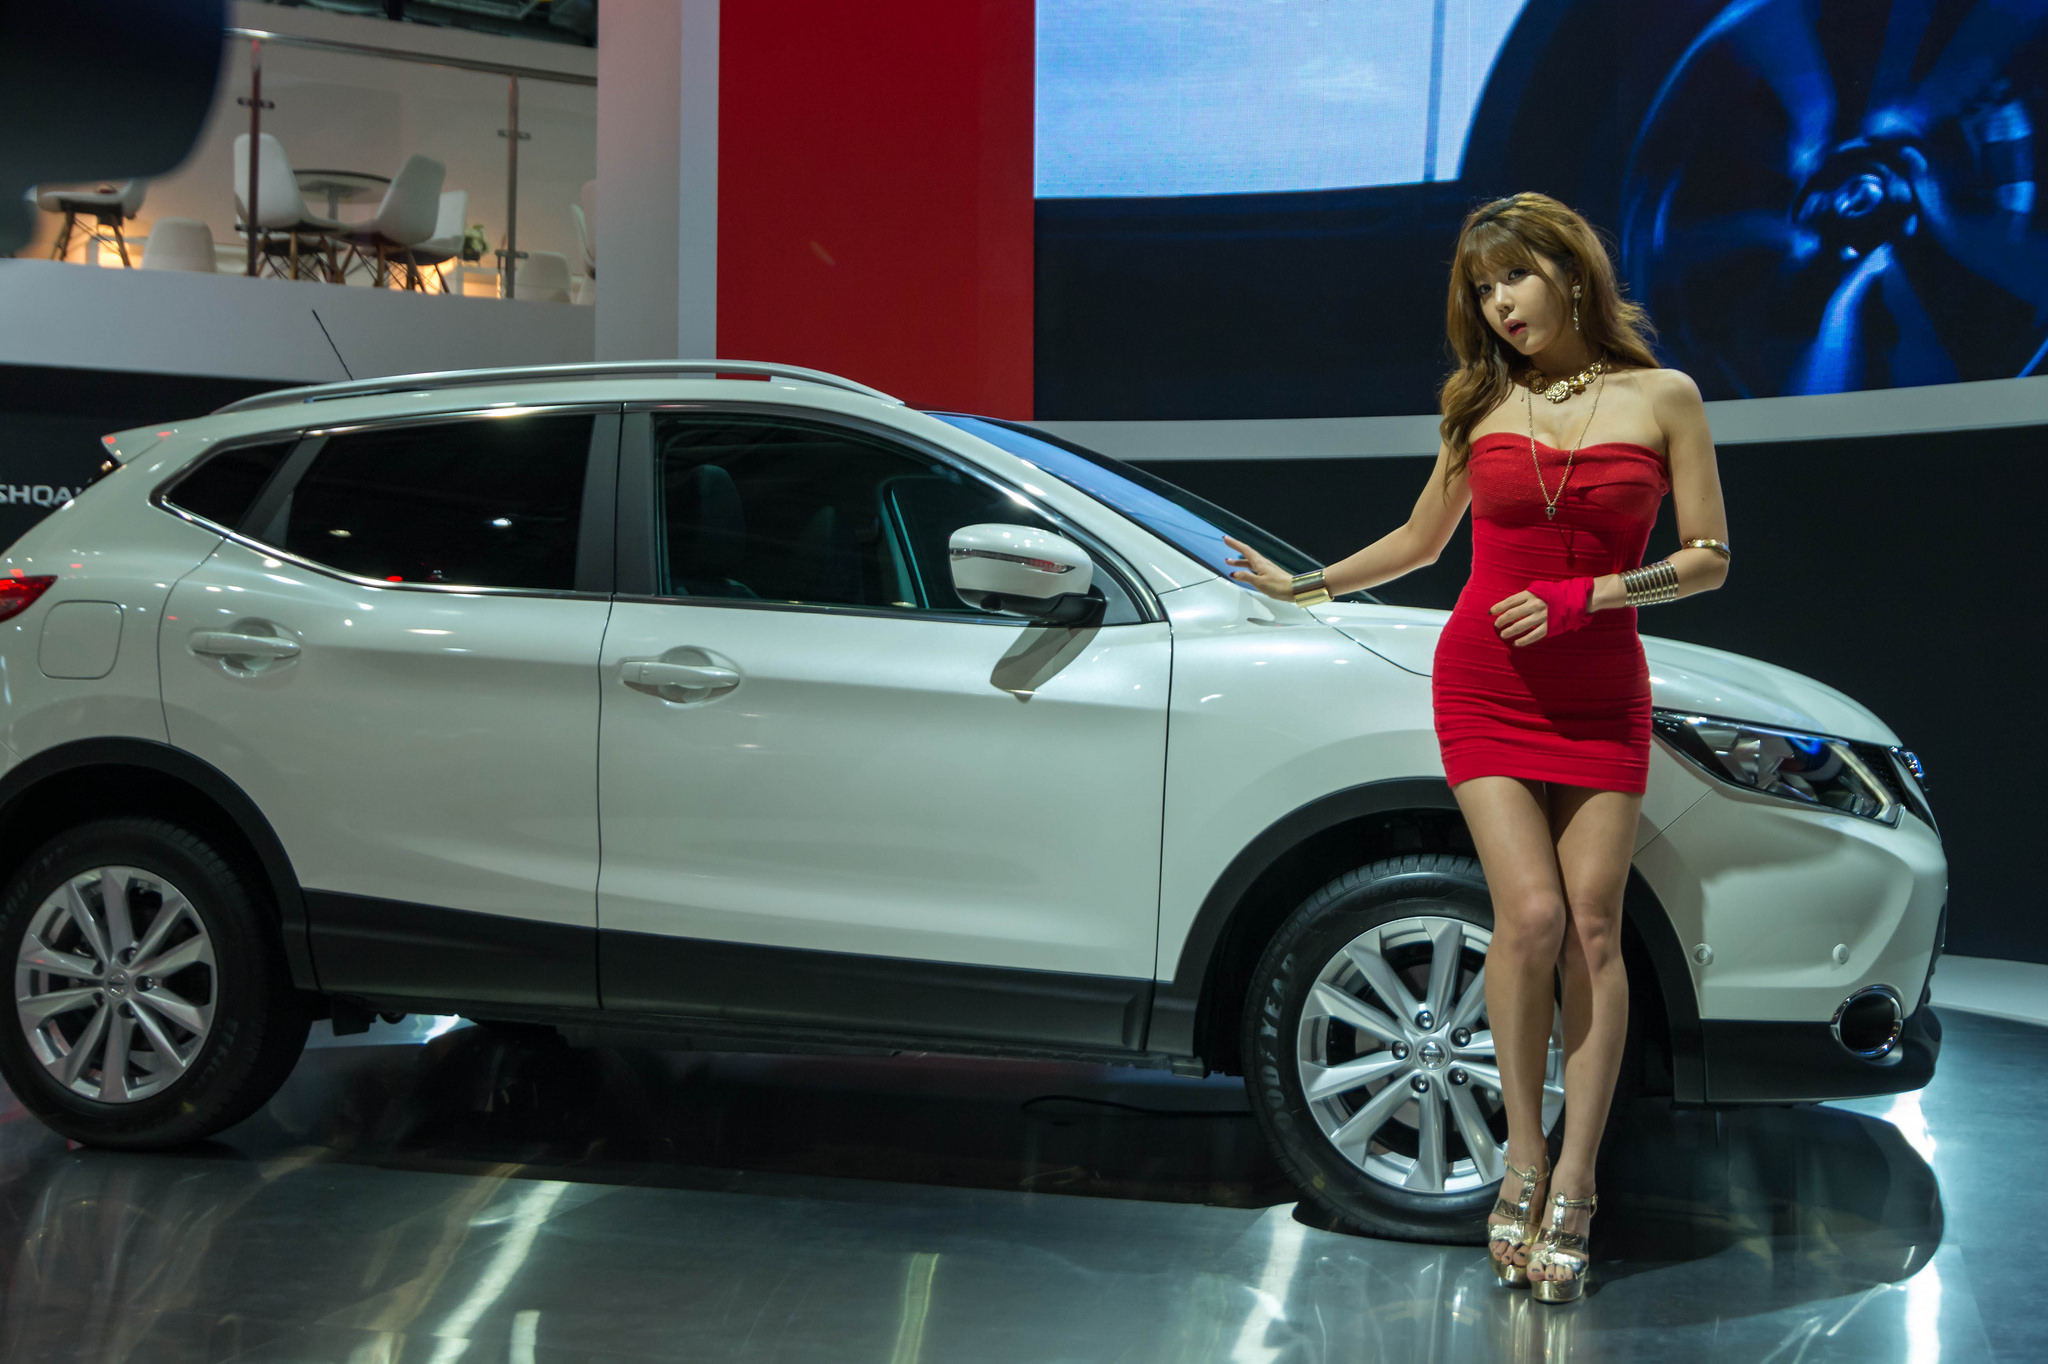 hot girl with nissan - photo #23